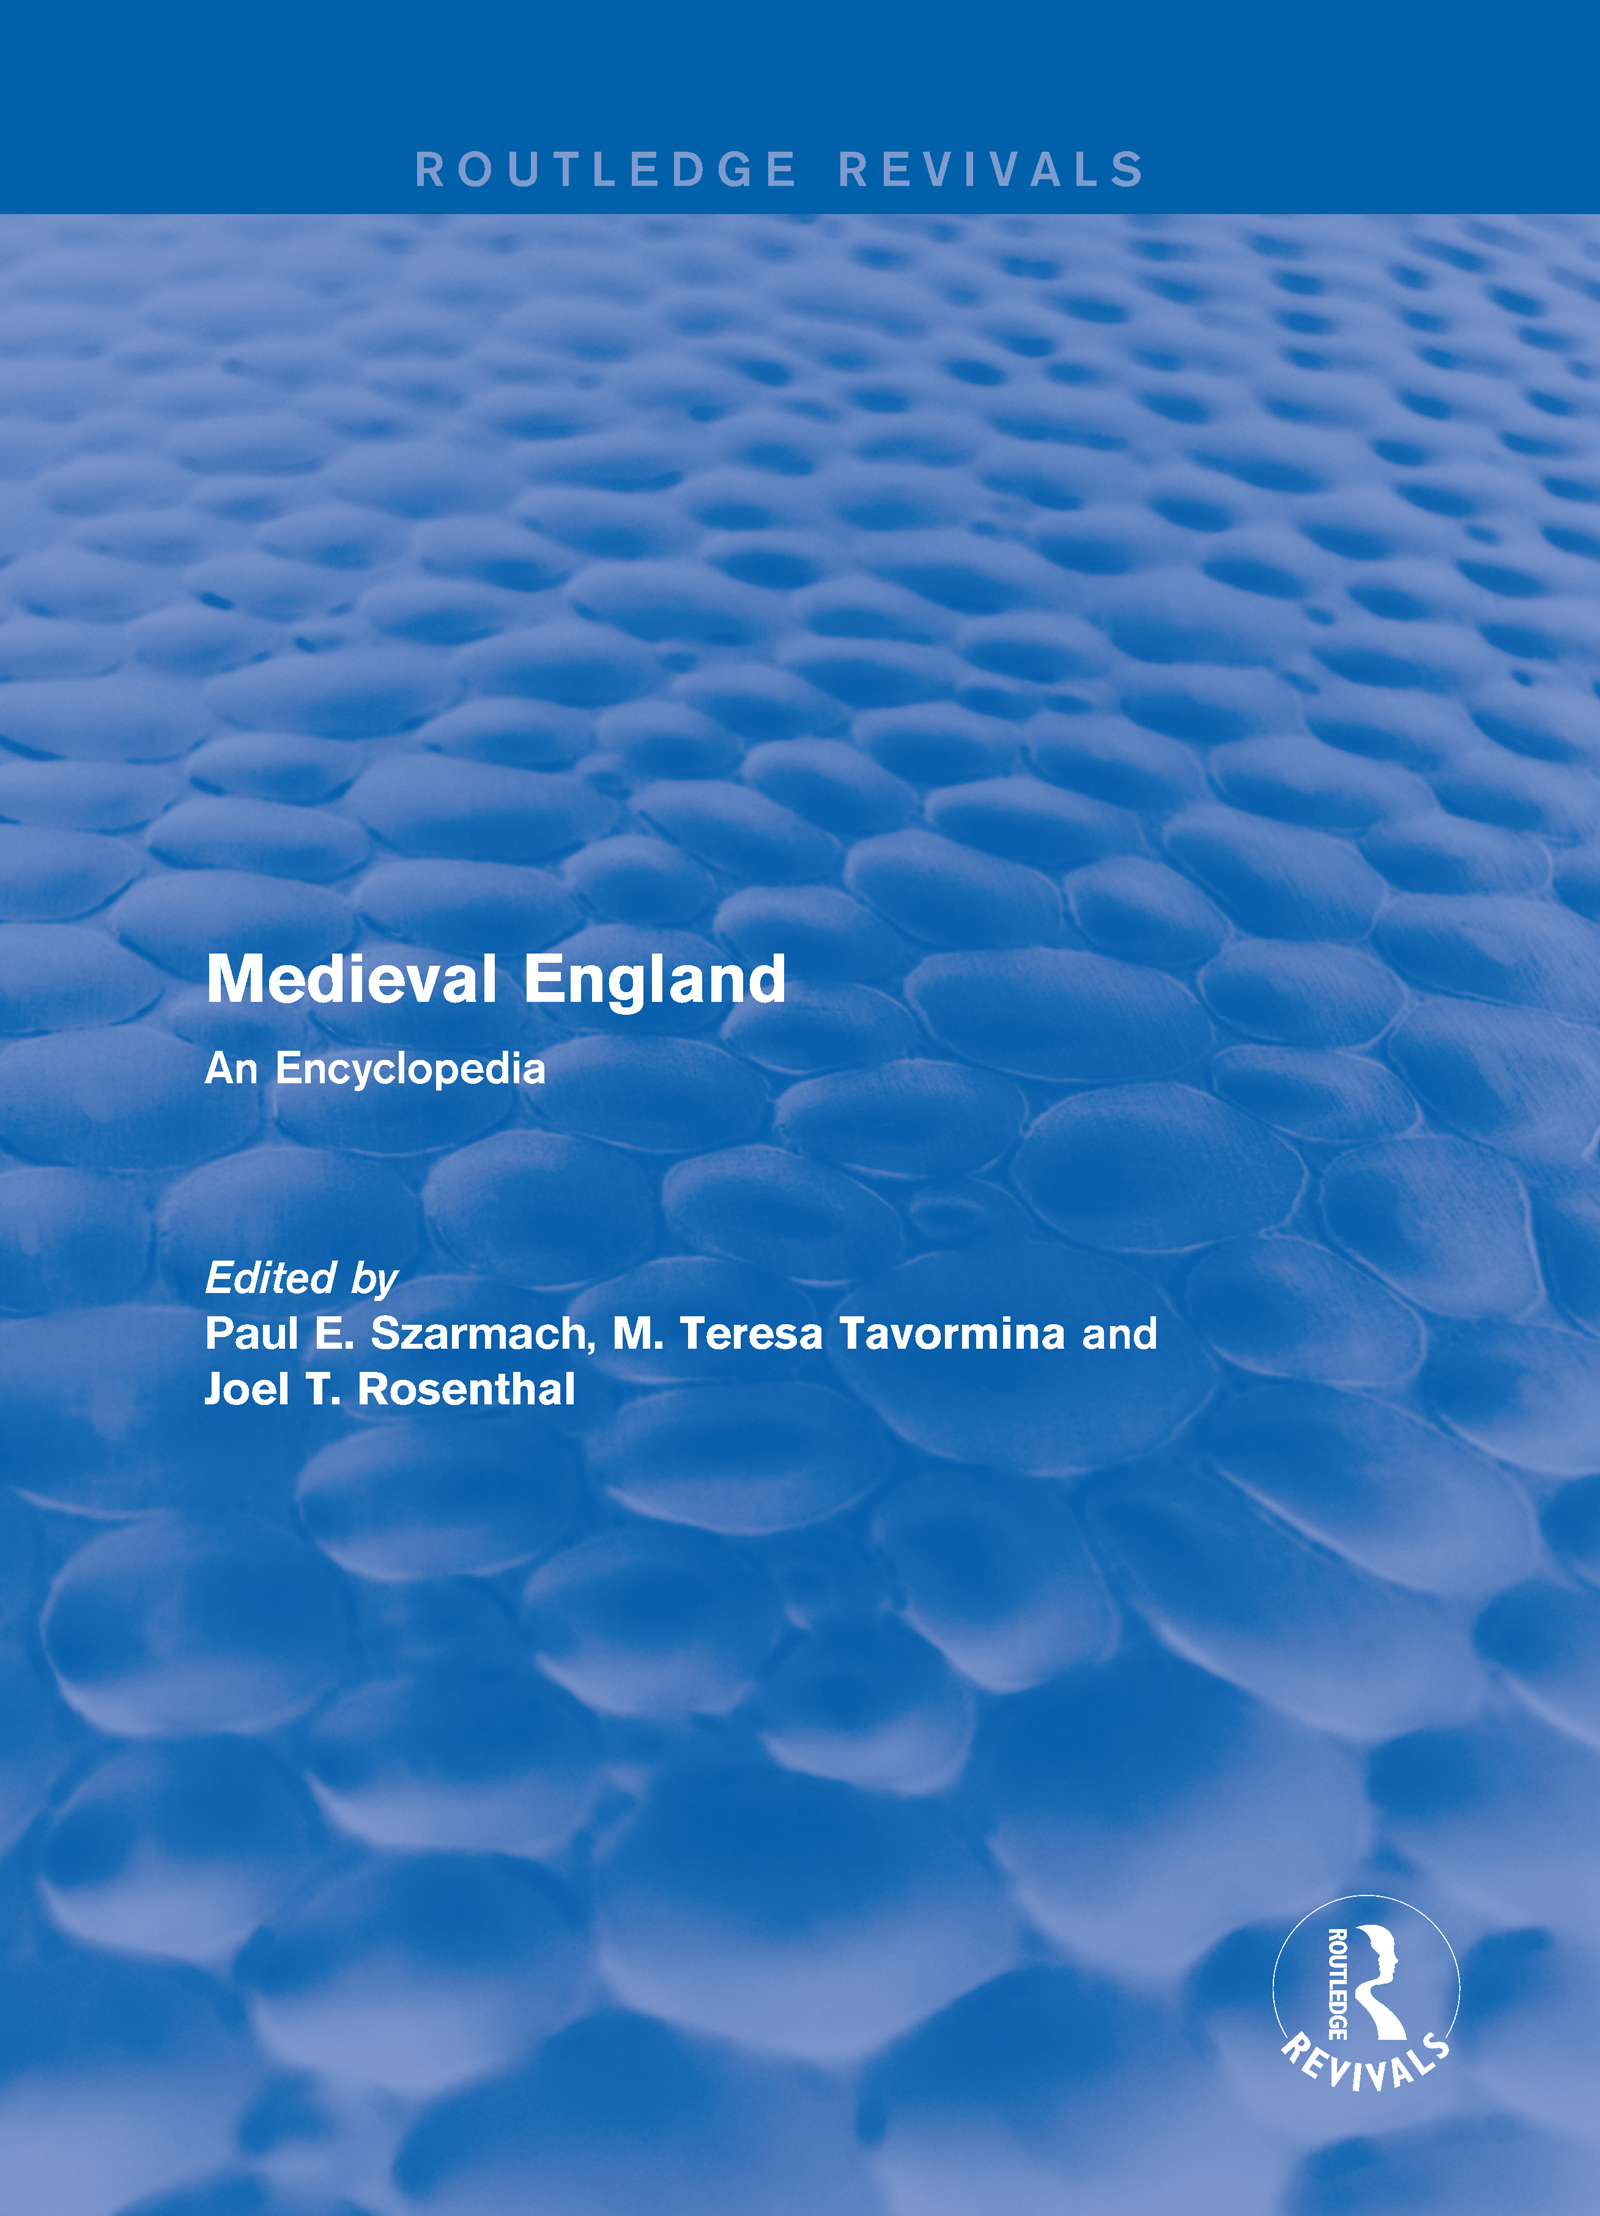 Routledge Revivals: Medieval England (1998): An Encyclopedia book cover